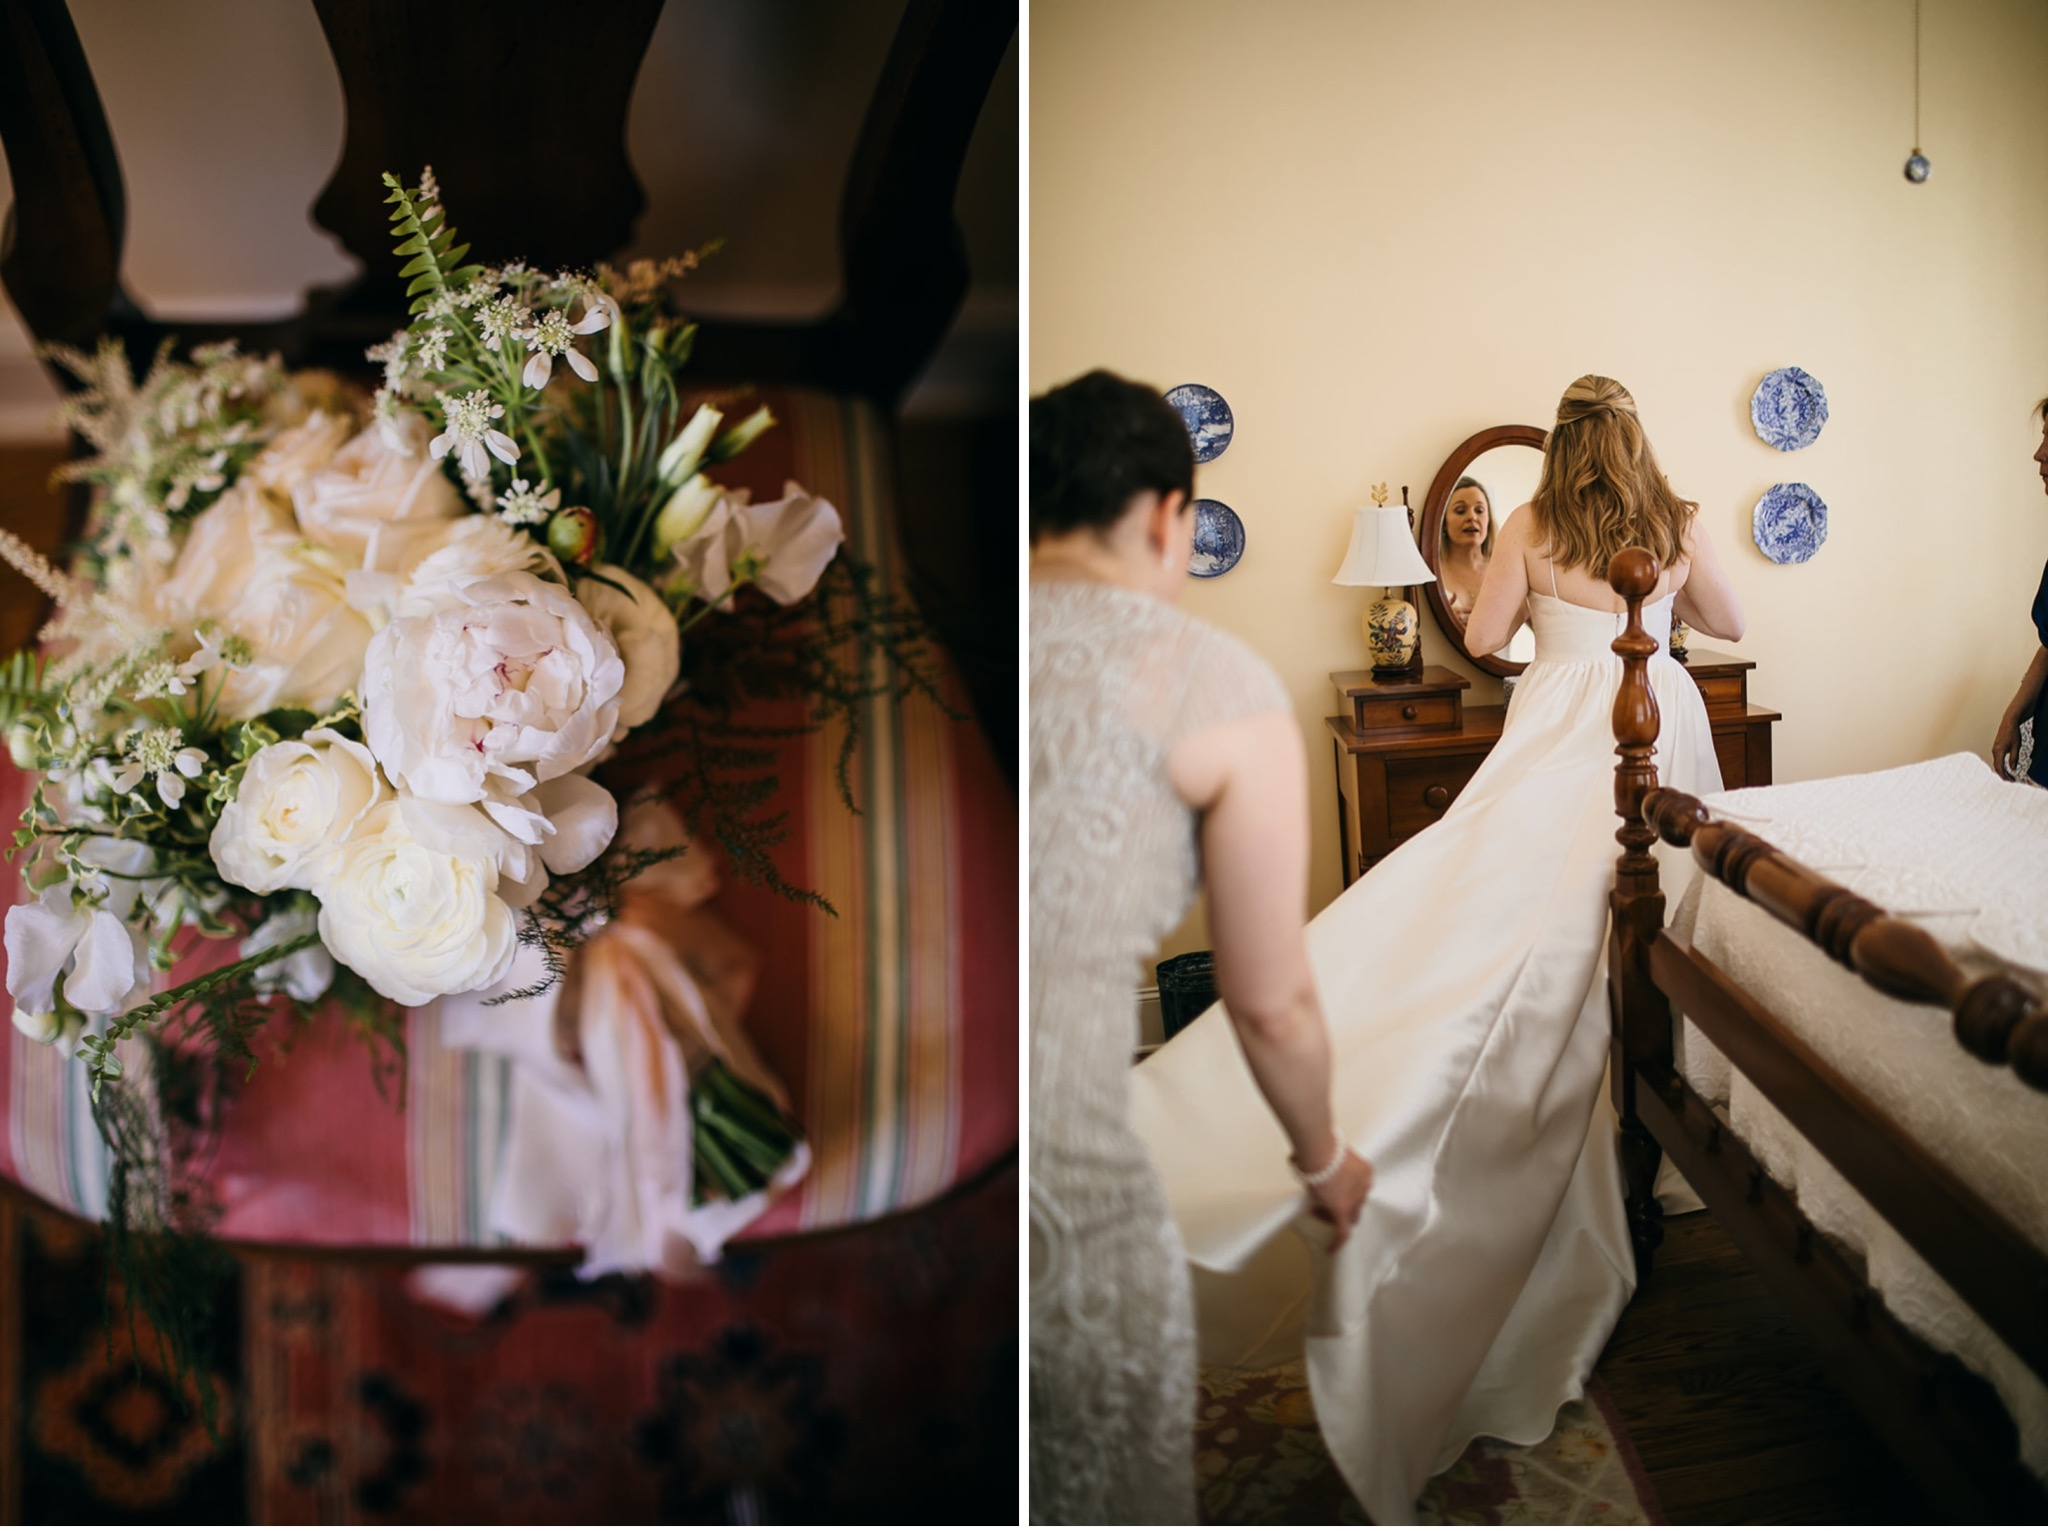 matron of honor spreads train of wedding gown behind bride while bride looks in mirror